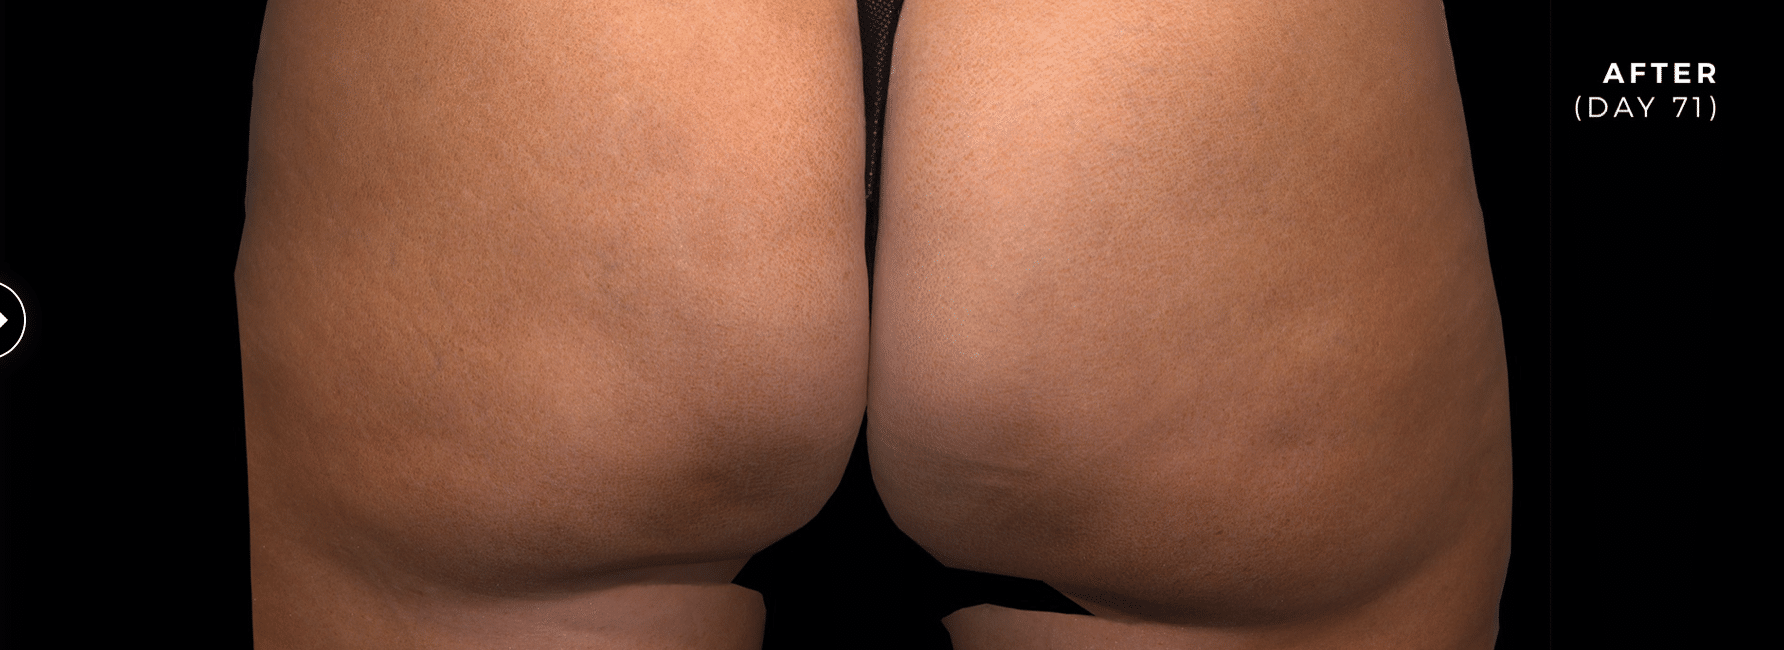 after cellulite photo